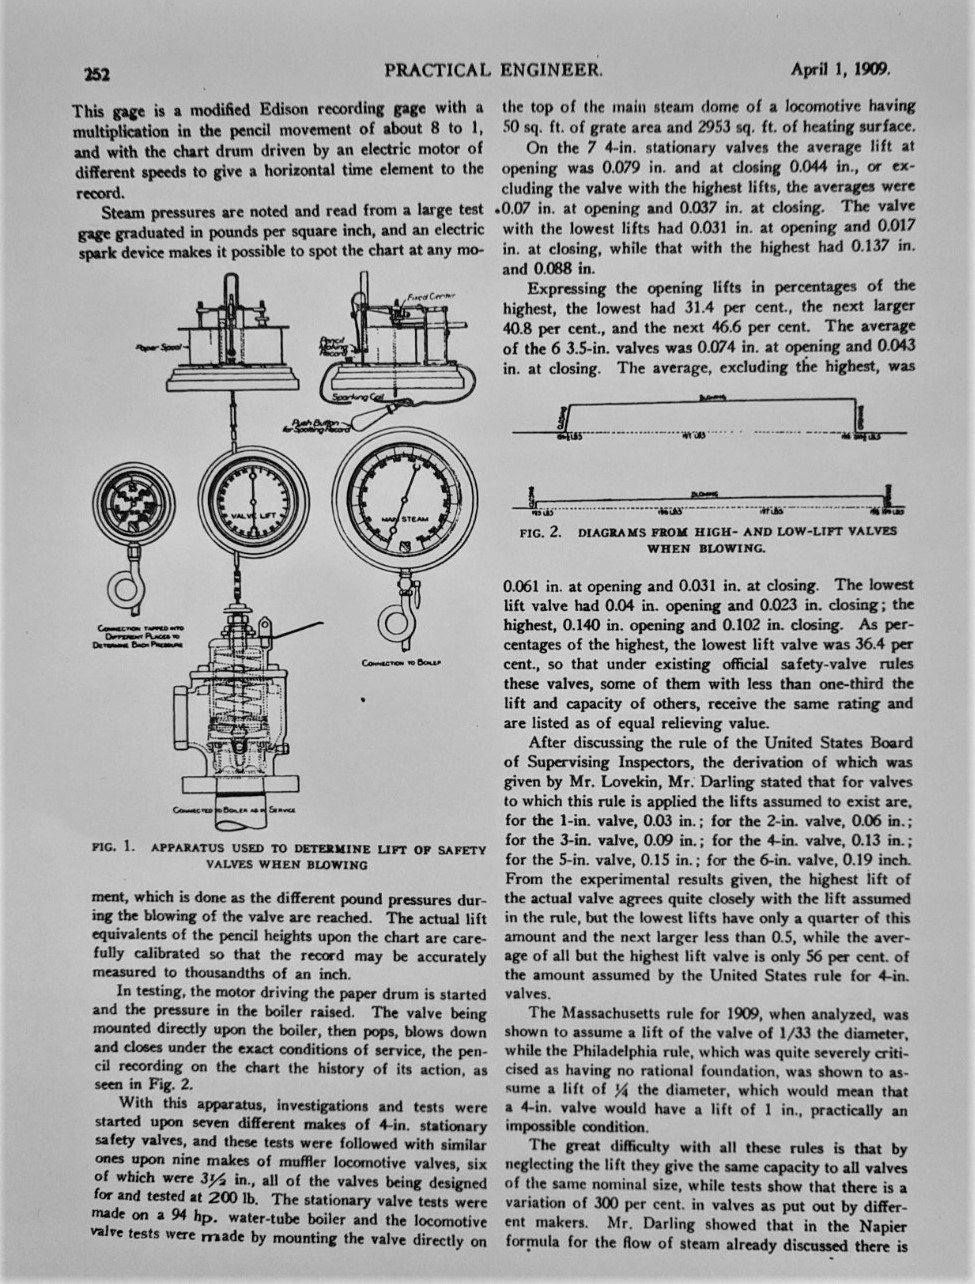 safety valve sizes 1909  2.jpg